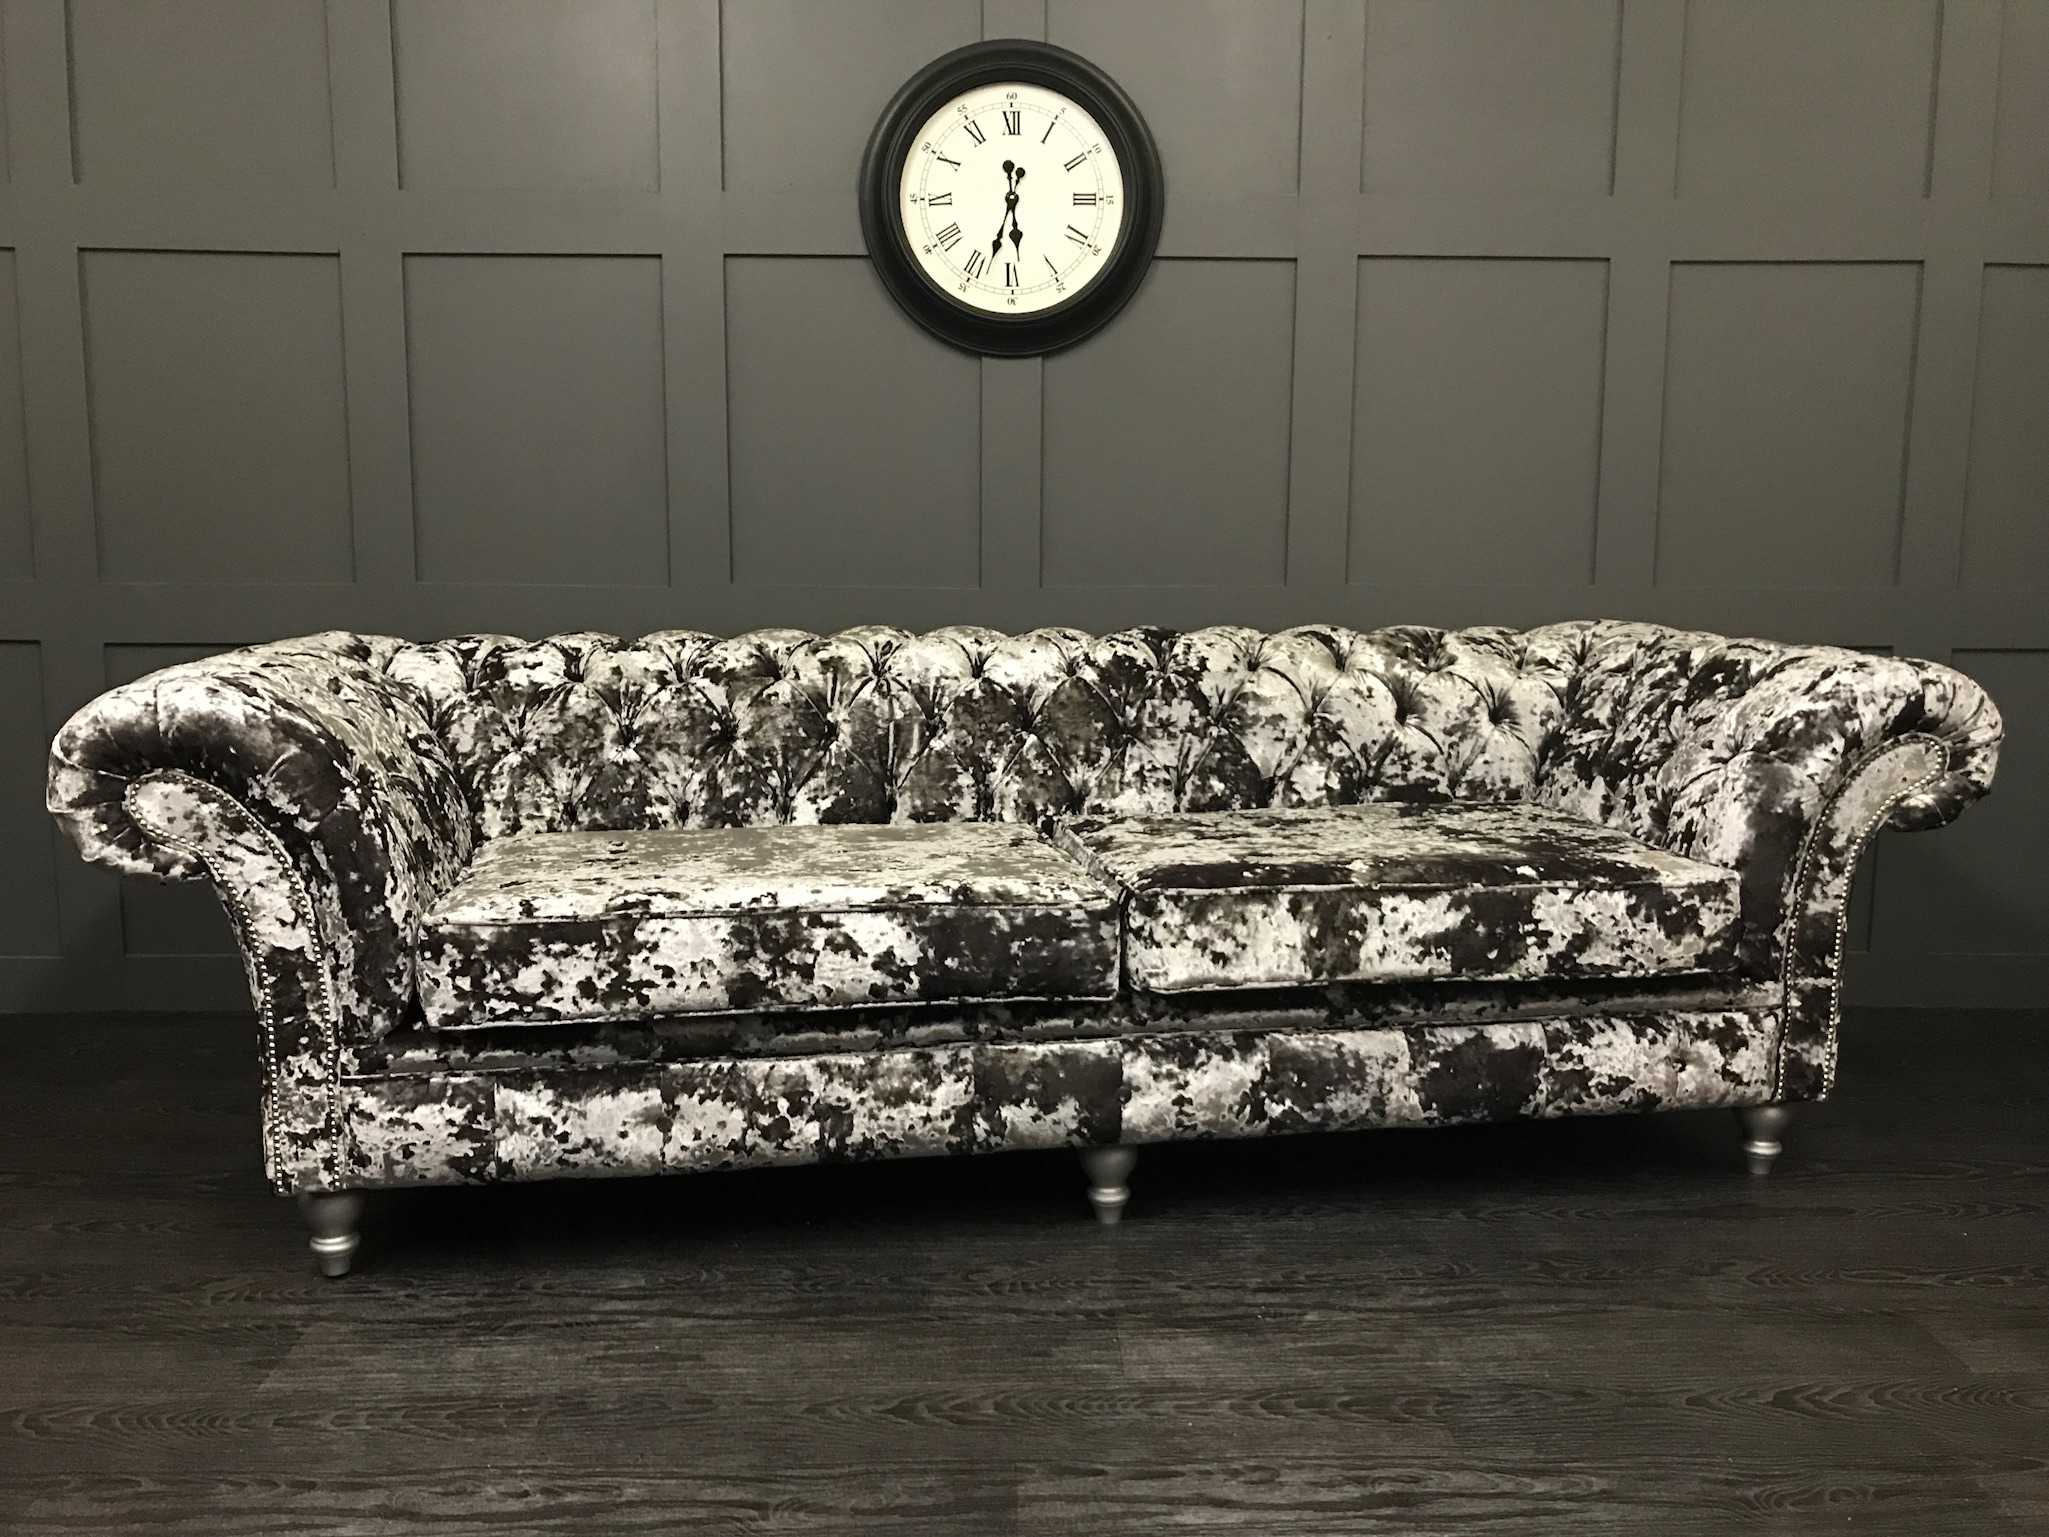 Chesterfield Suites The London Chesterfield Flint Lustro Crushed Velvet Timeless Sofas